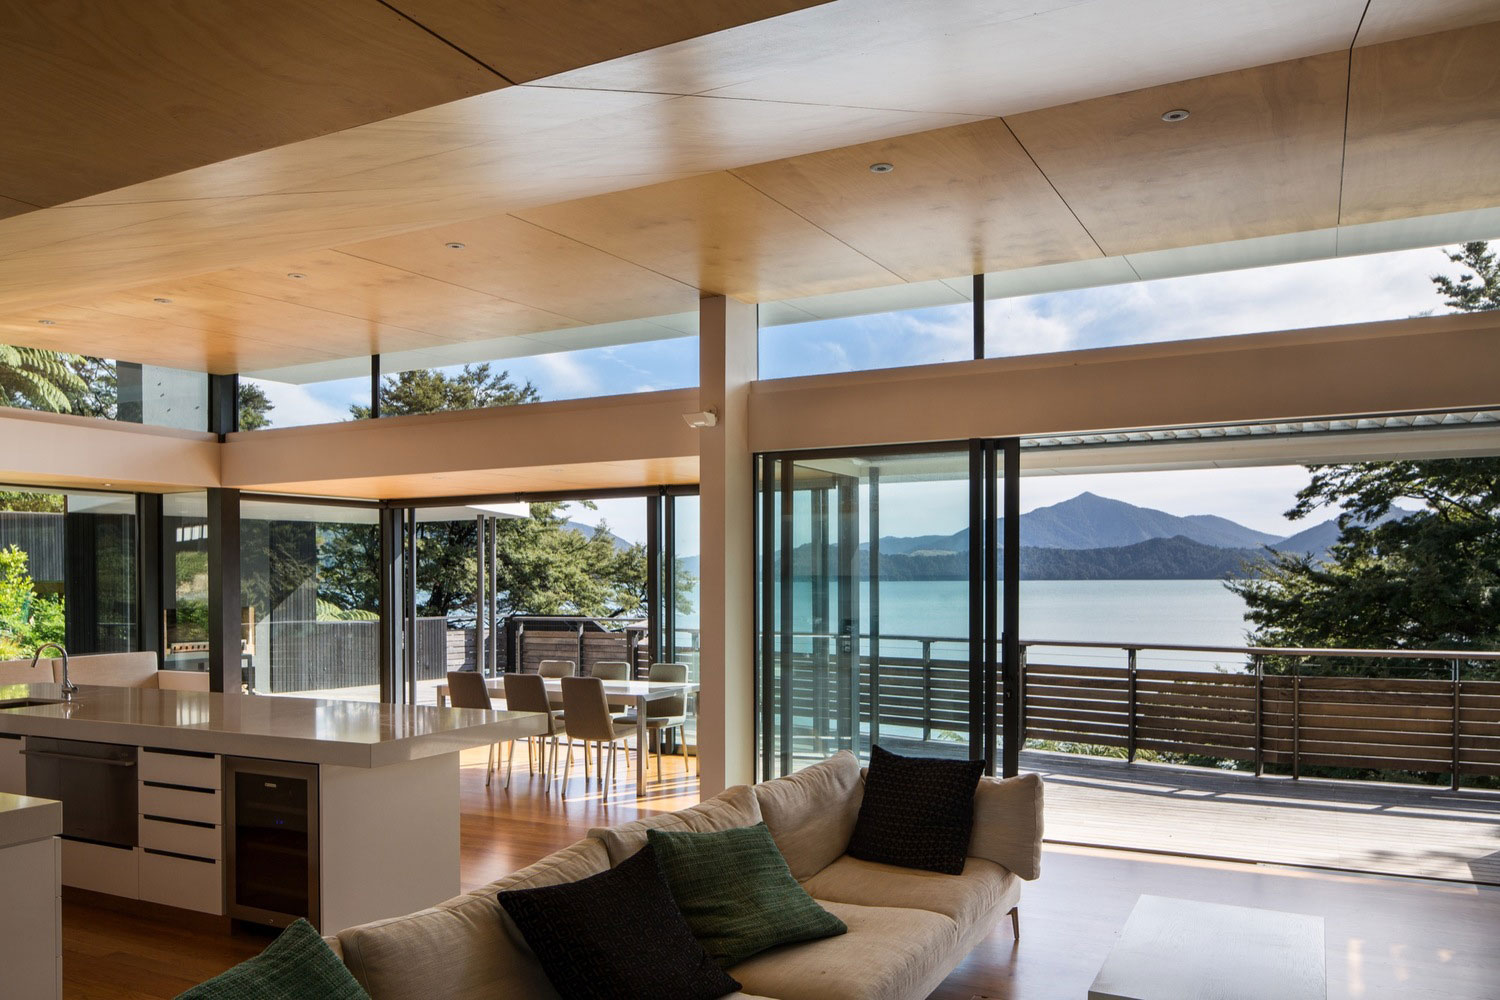 Wonderful Not Only Is It Surrounded By All The Beautiful Mountain Views, But It Also  Sits In Front Of The Sea. Therefore, Every Single Space Of The Home ...